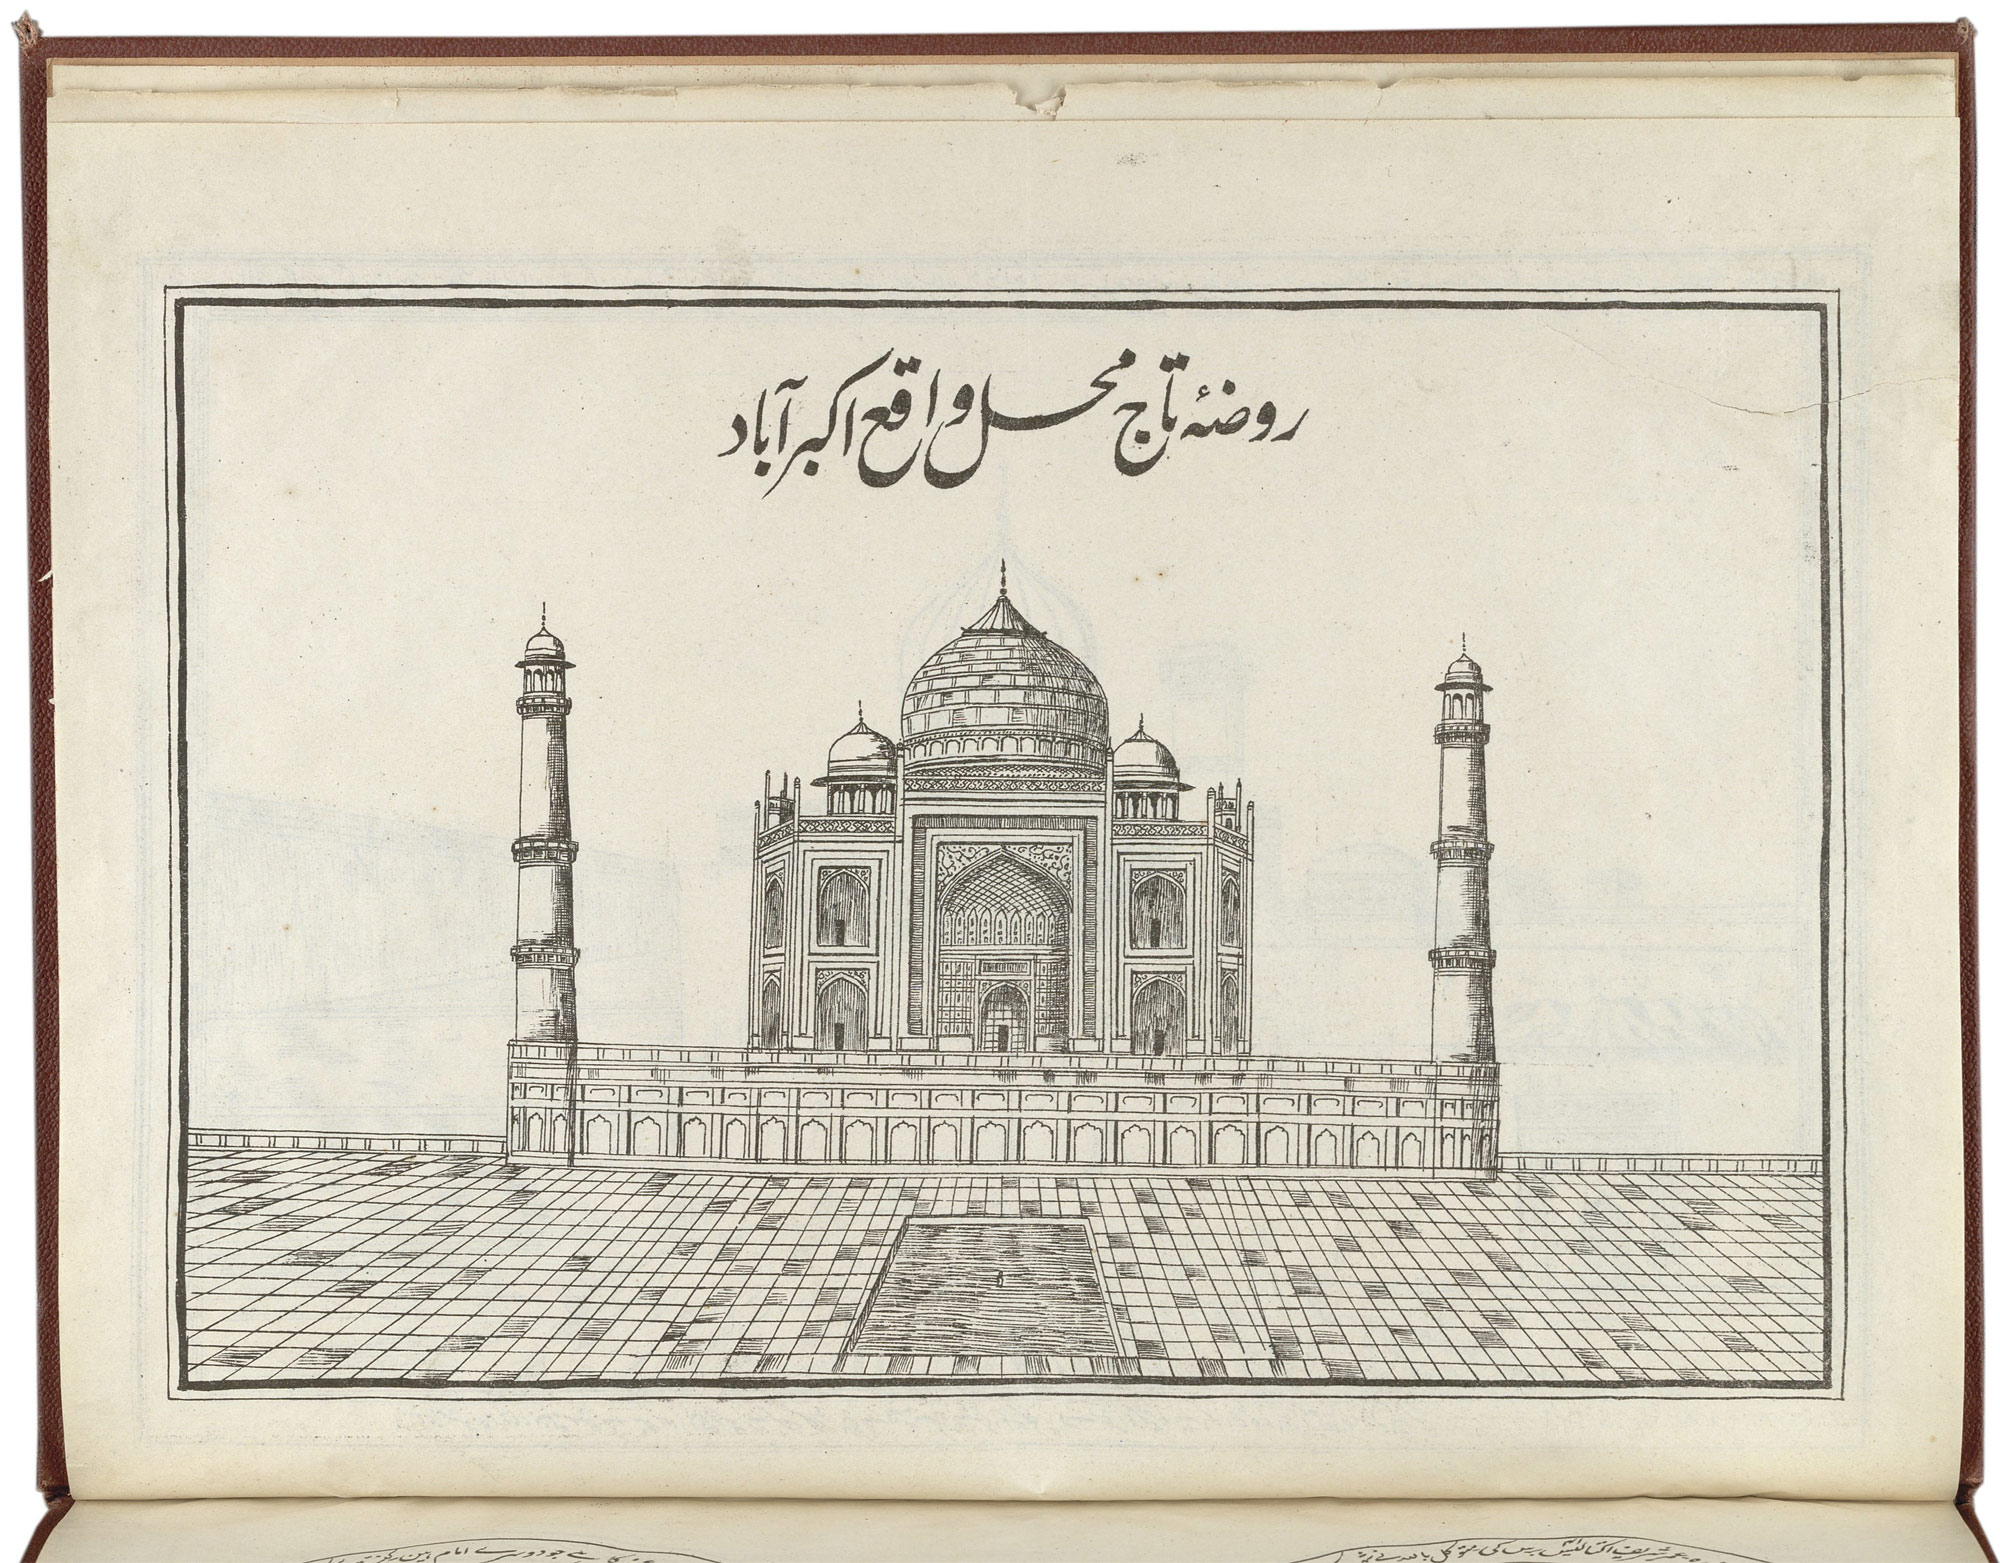 19th century print of the Taj Mahal from Ziyārāt al-ʿArab19th century print of the Taj Mahal from Ziyārāt al-ʿArab